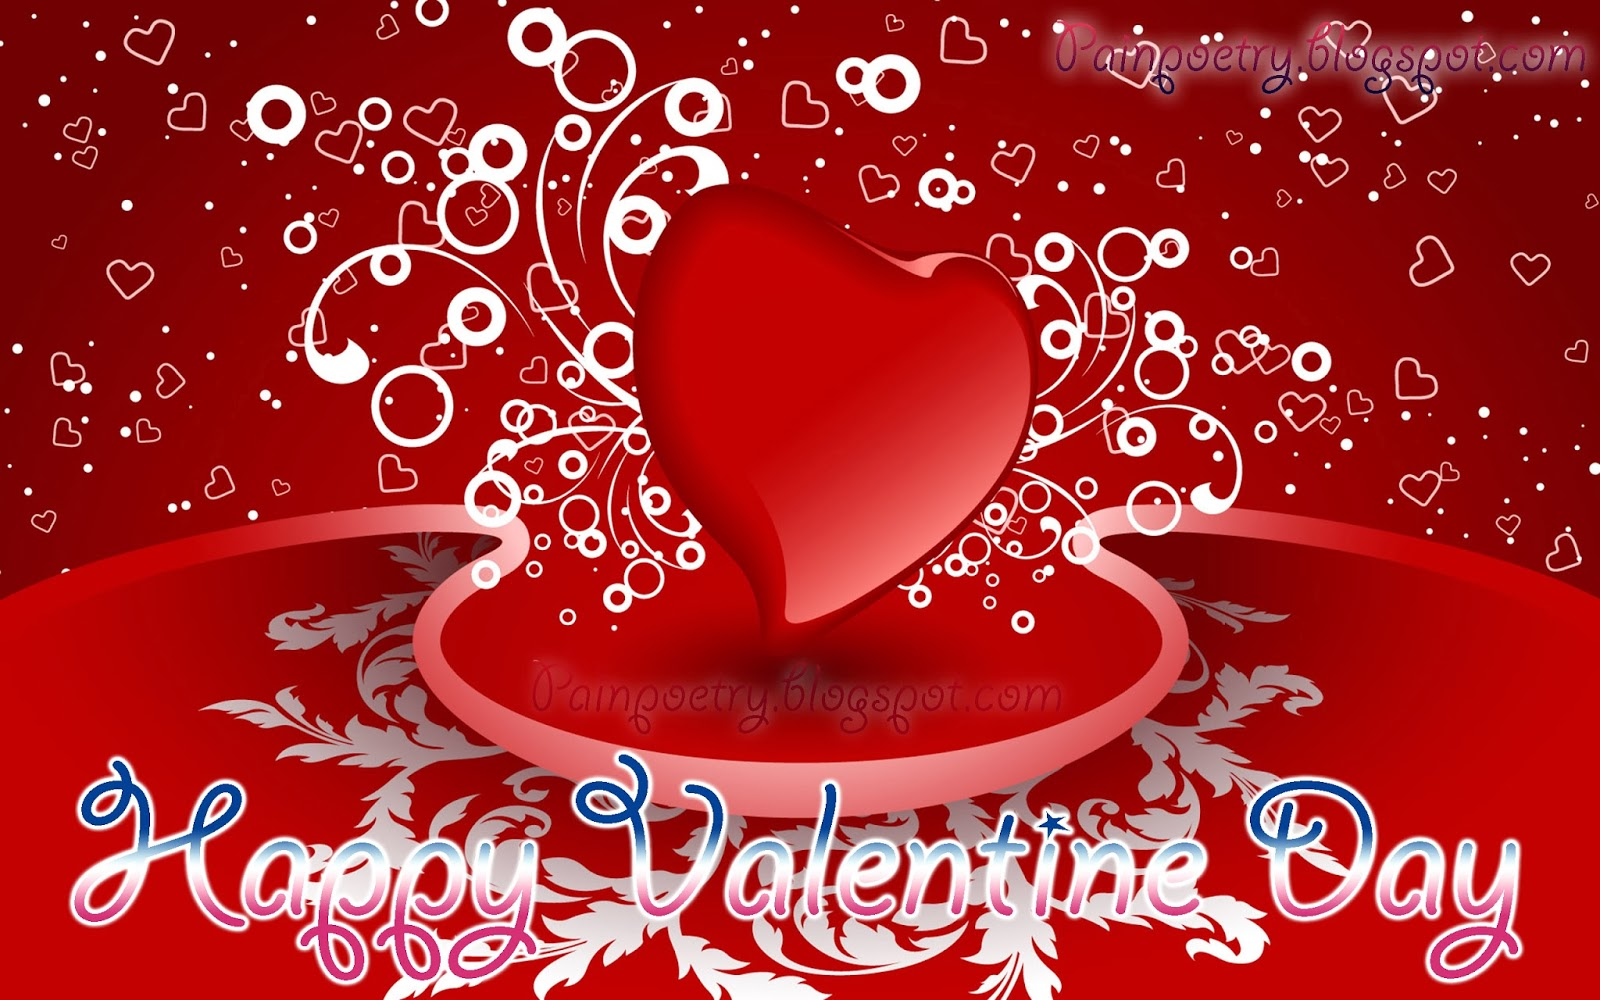 Happy-Walentines-Day-Wishes-Walpaper-With-Heart-Image-HD